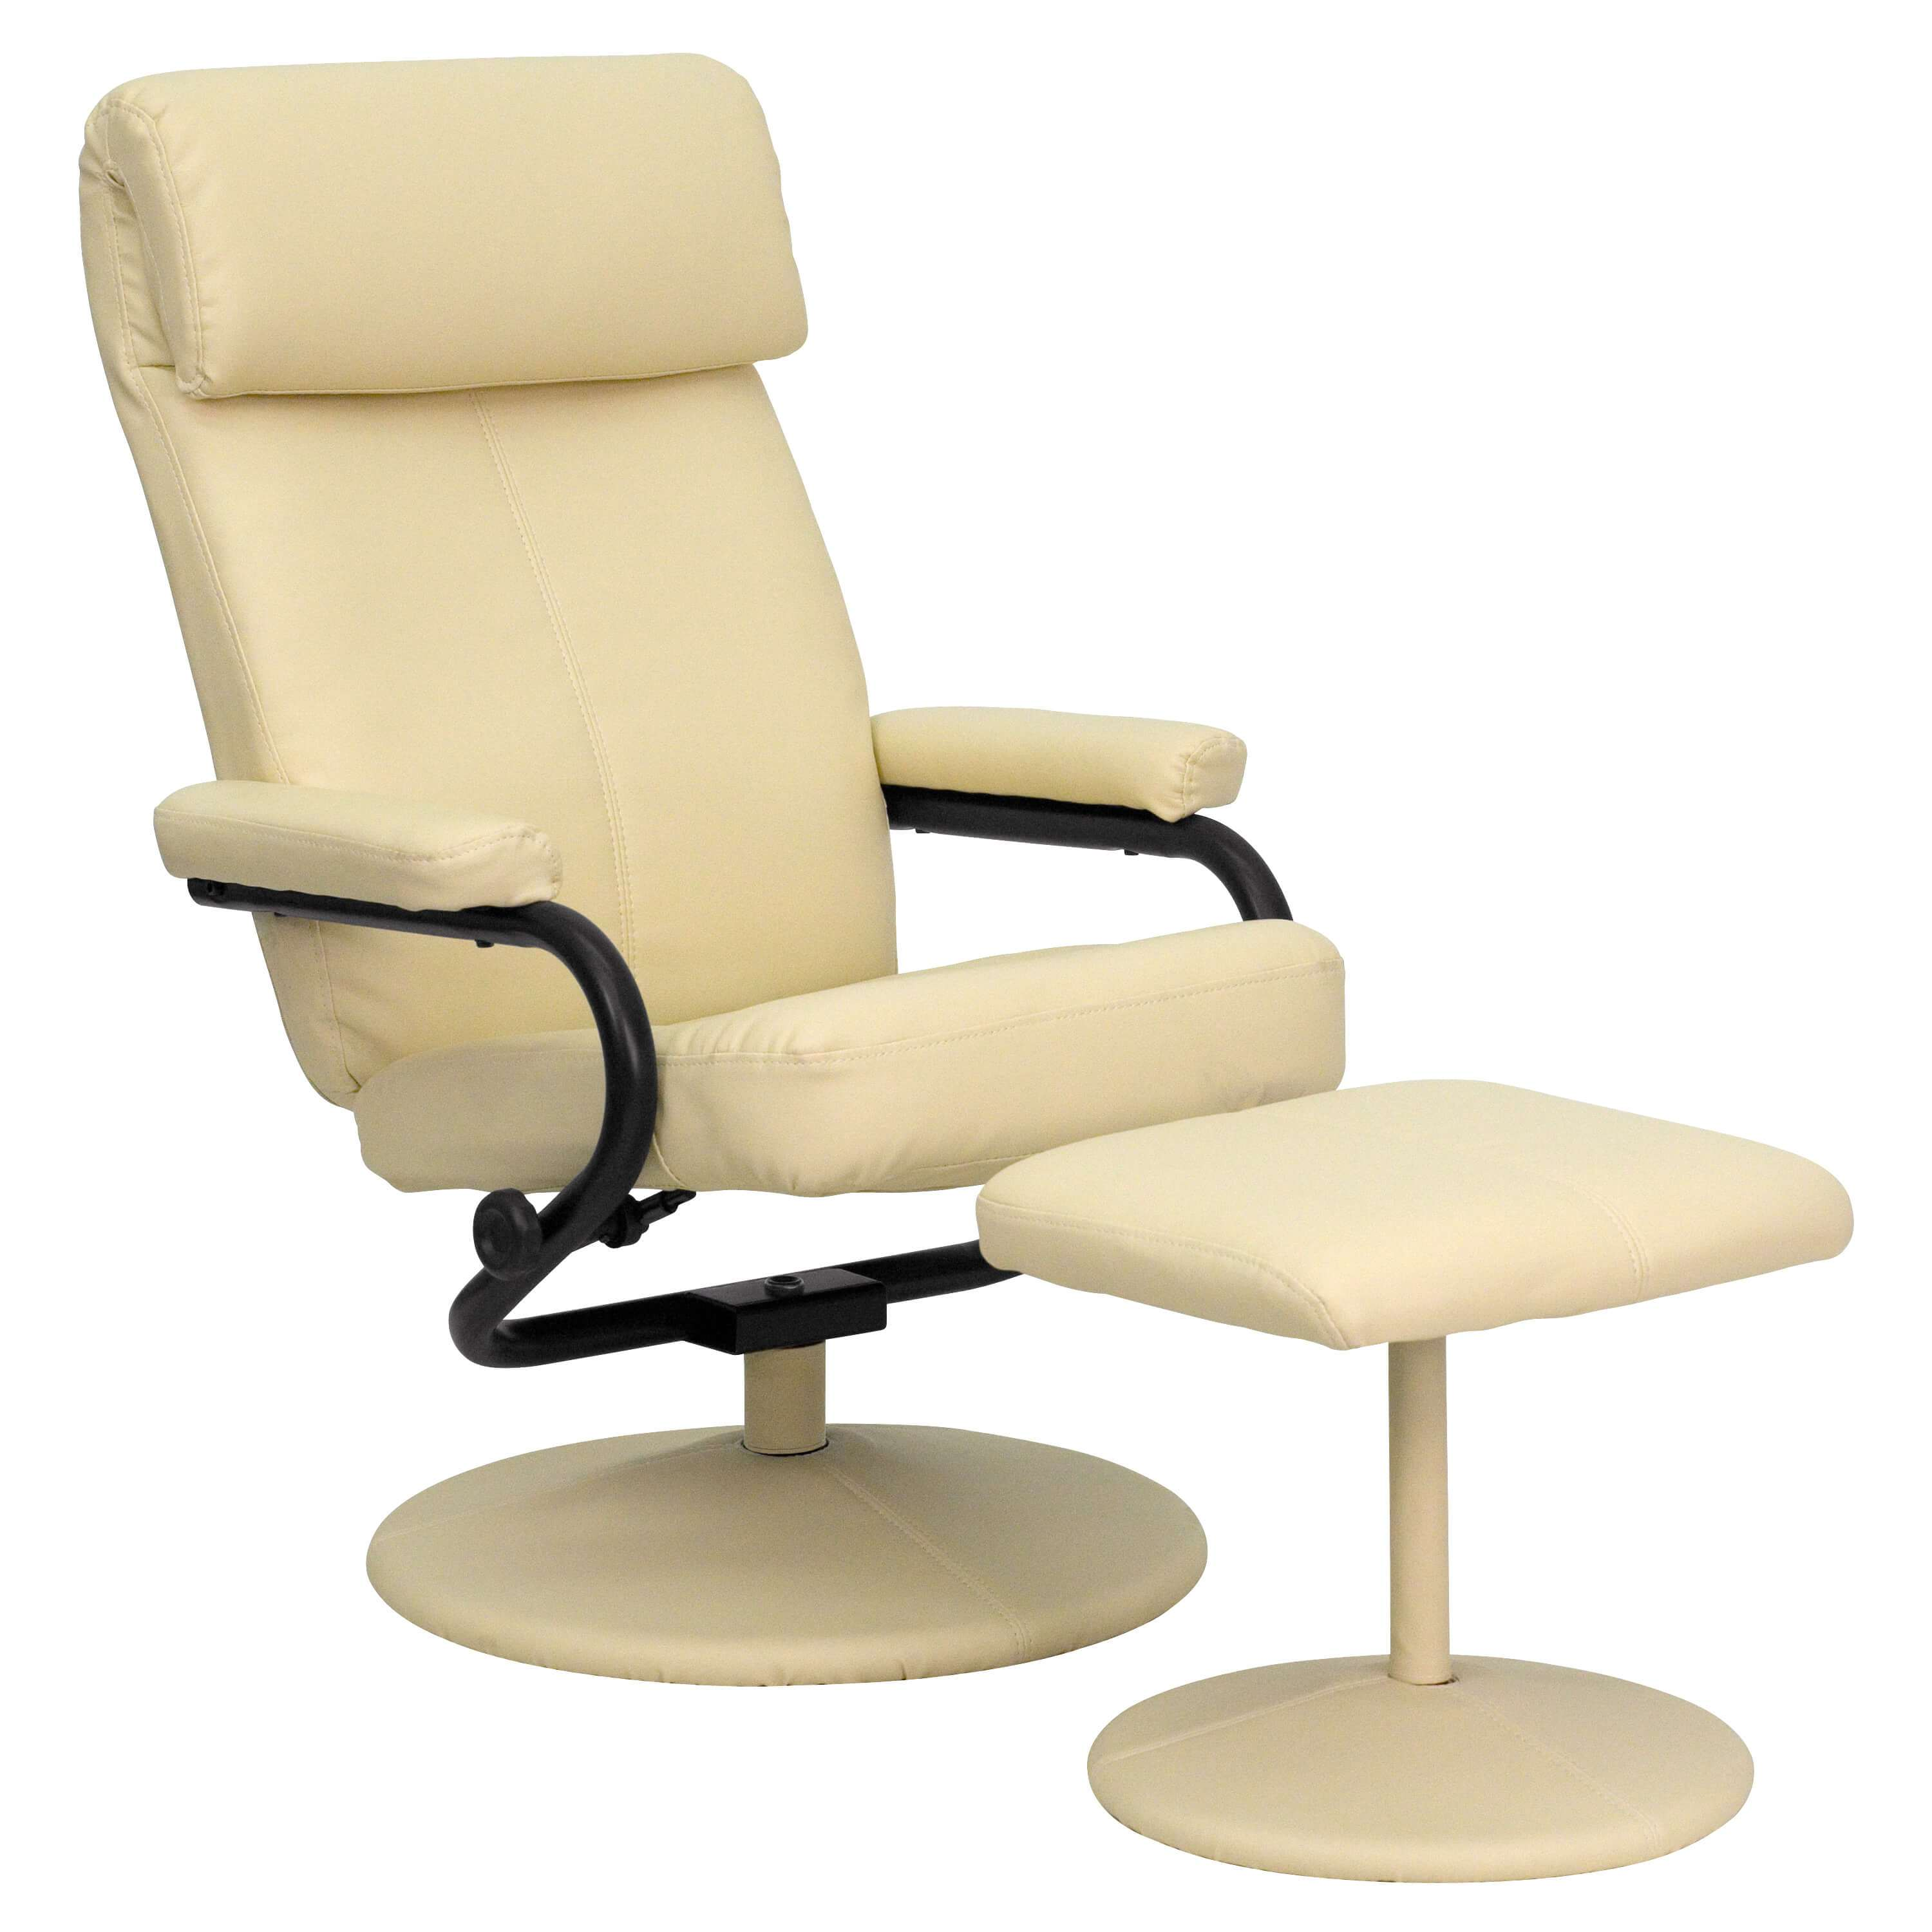 Swivel recliner CUB BT 7863 CREAM GG FLA